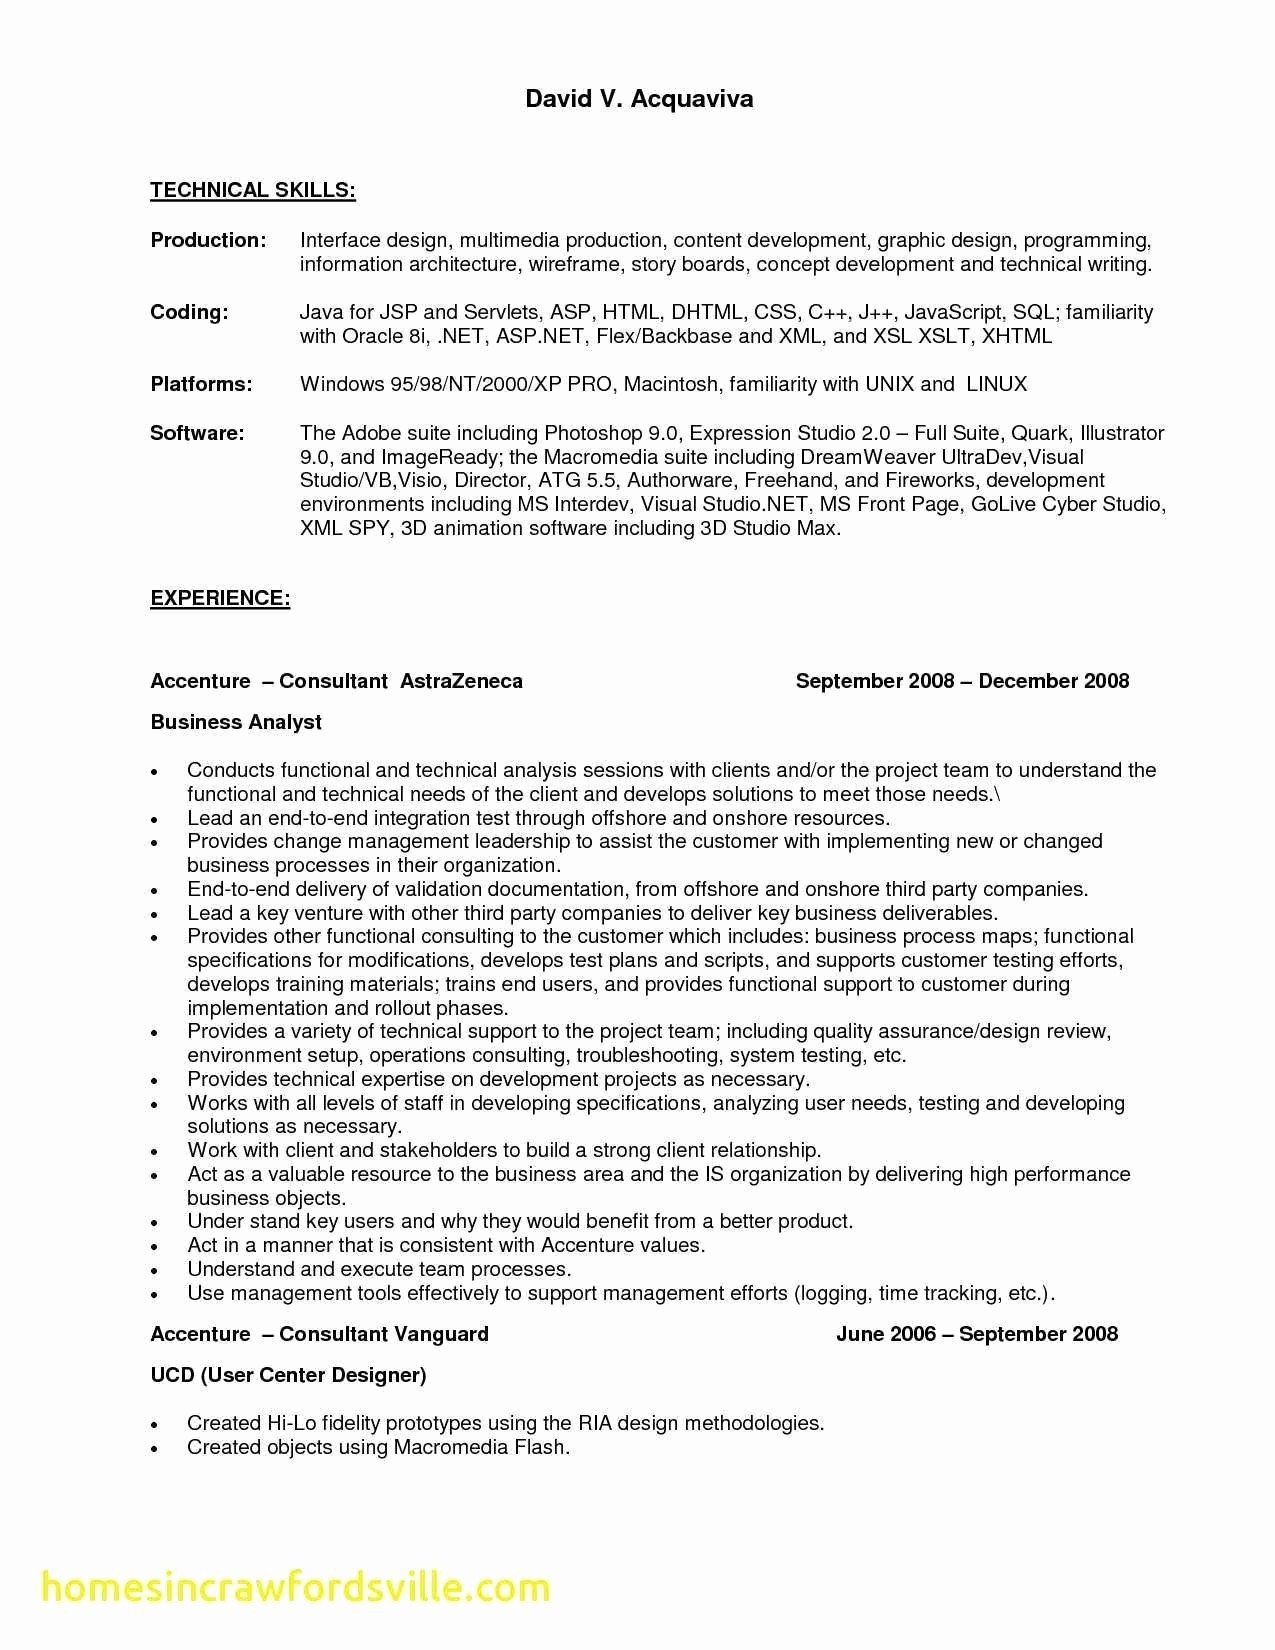 Security Resume Skills - Resume Skills Examples for Customer Service Refrence Information